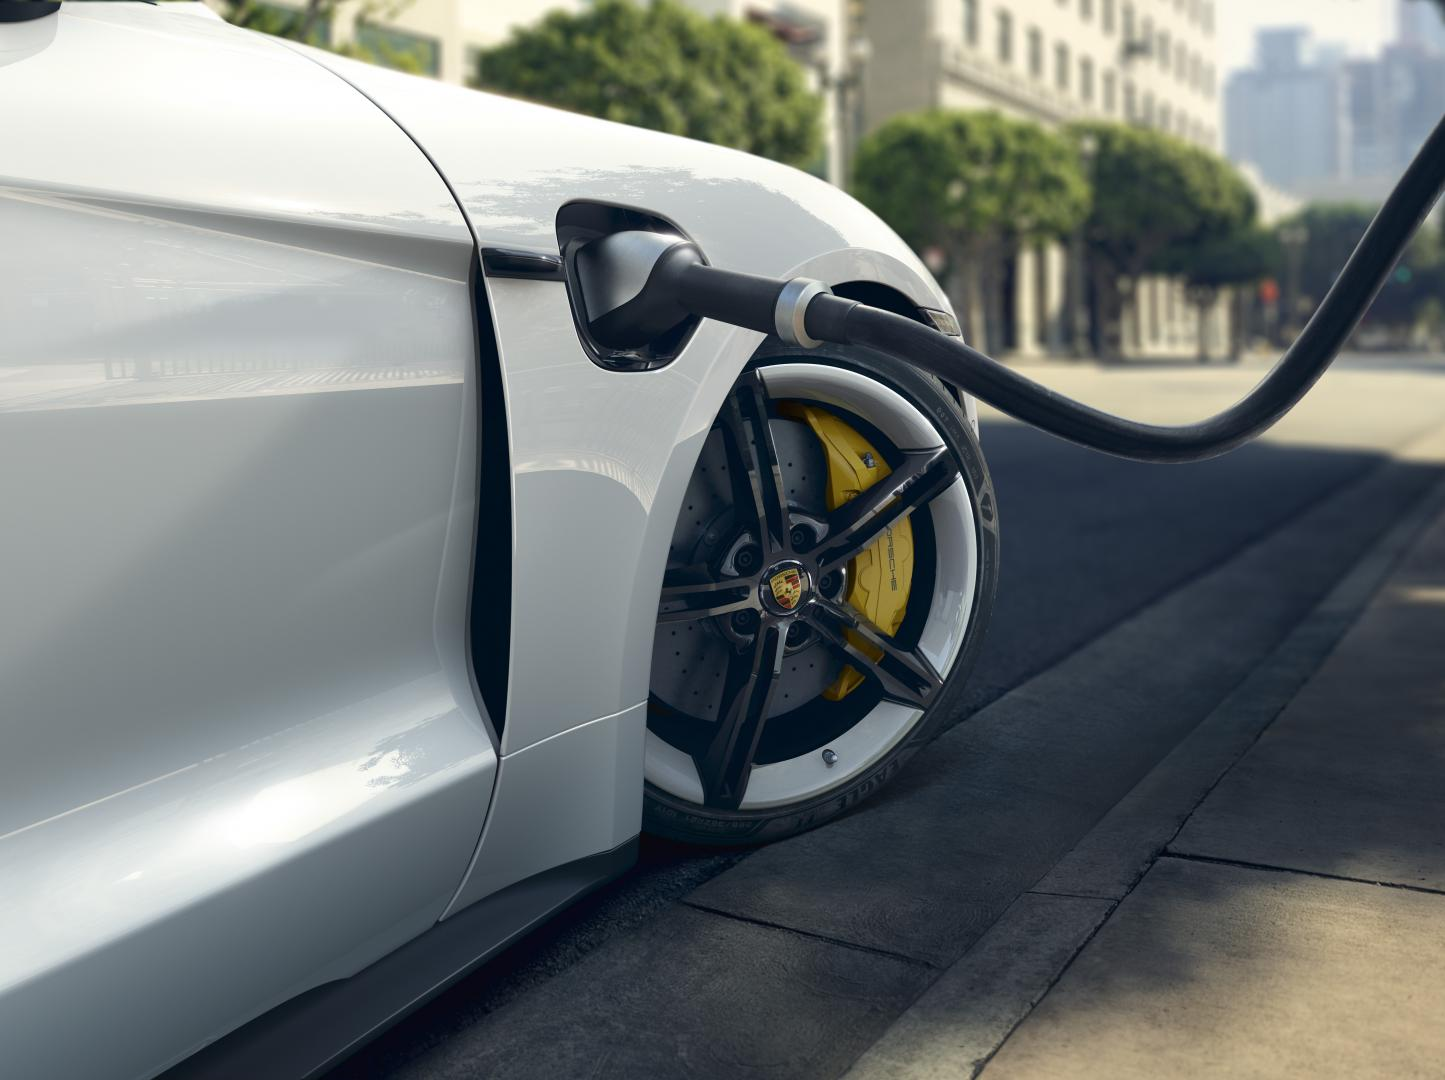 Porsche Taycan Turbo S 2019 stekker laden